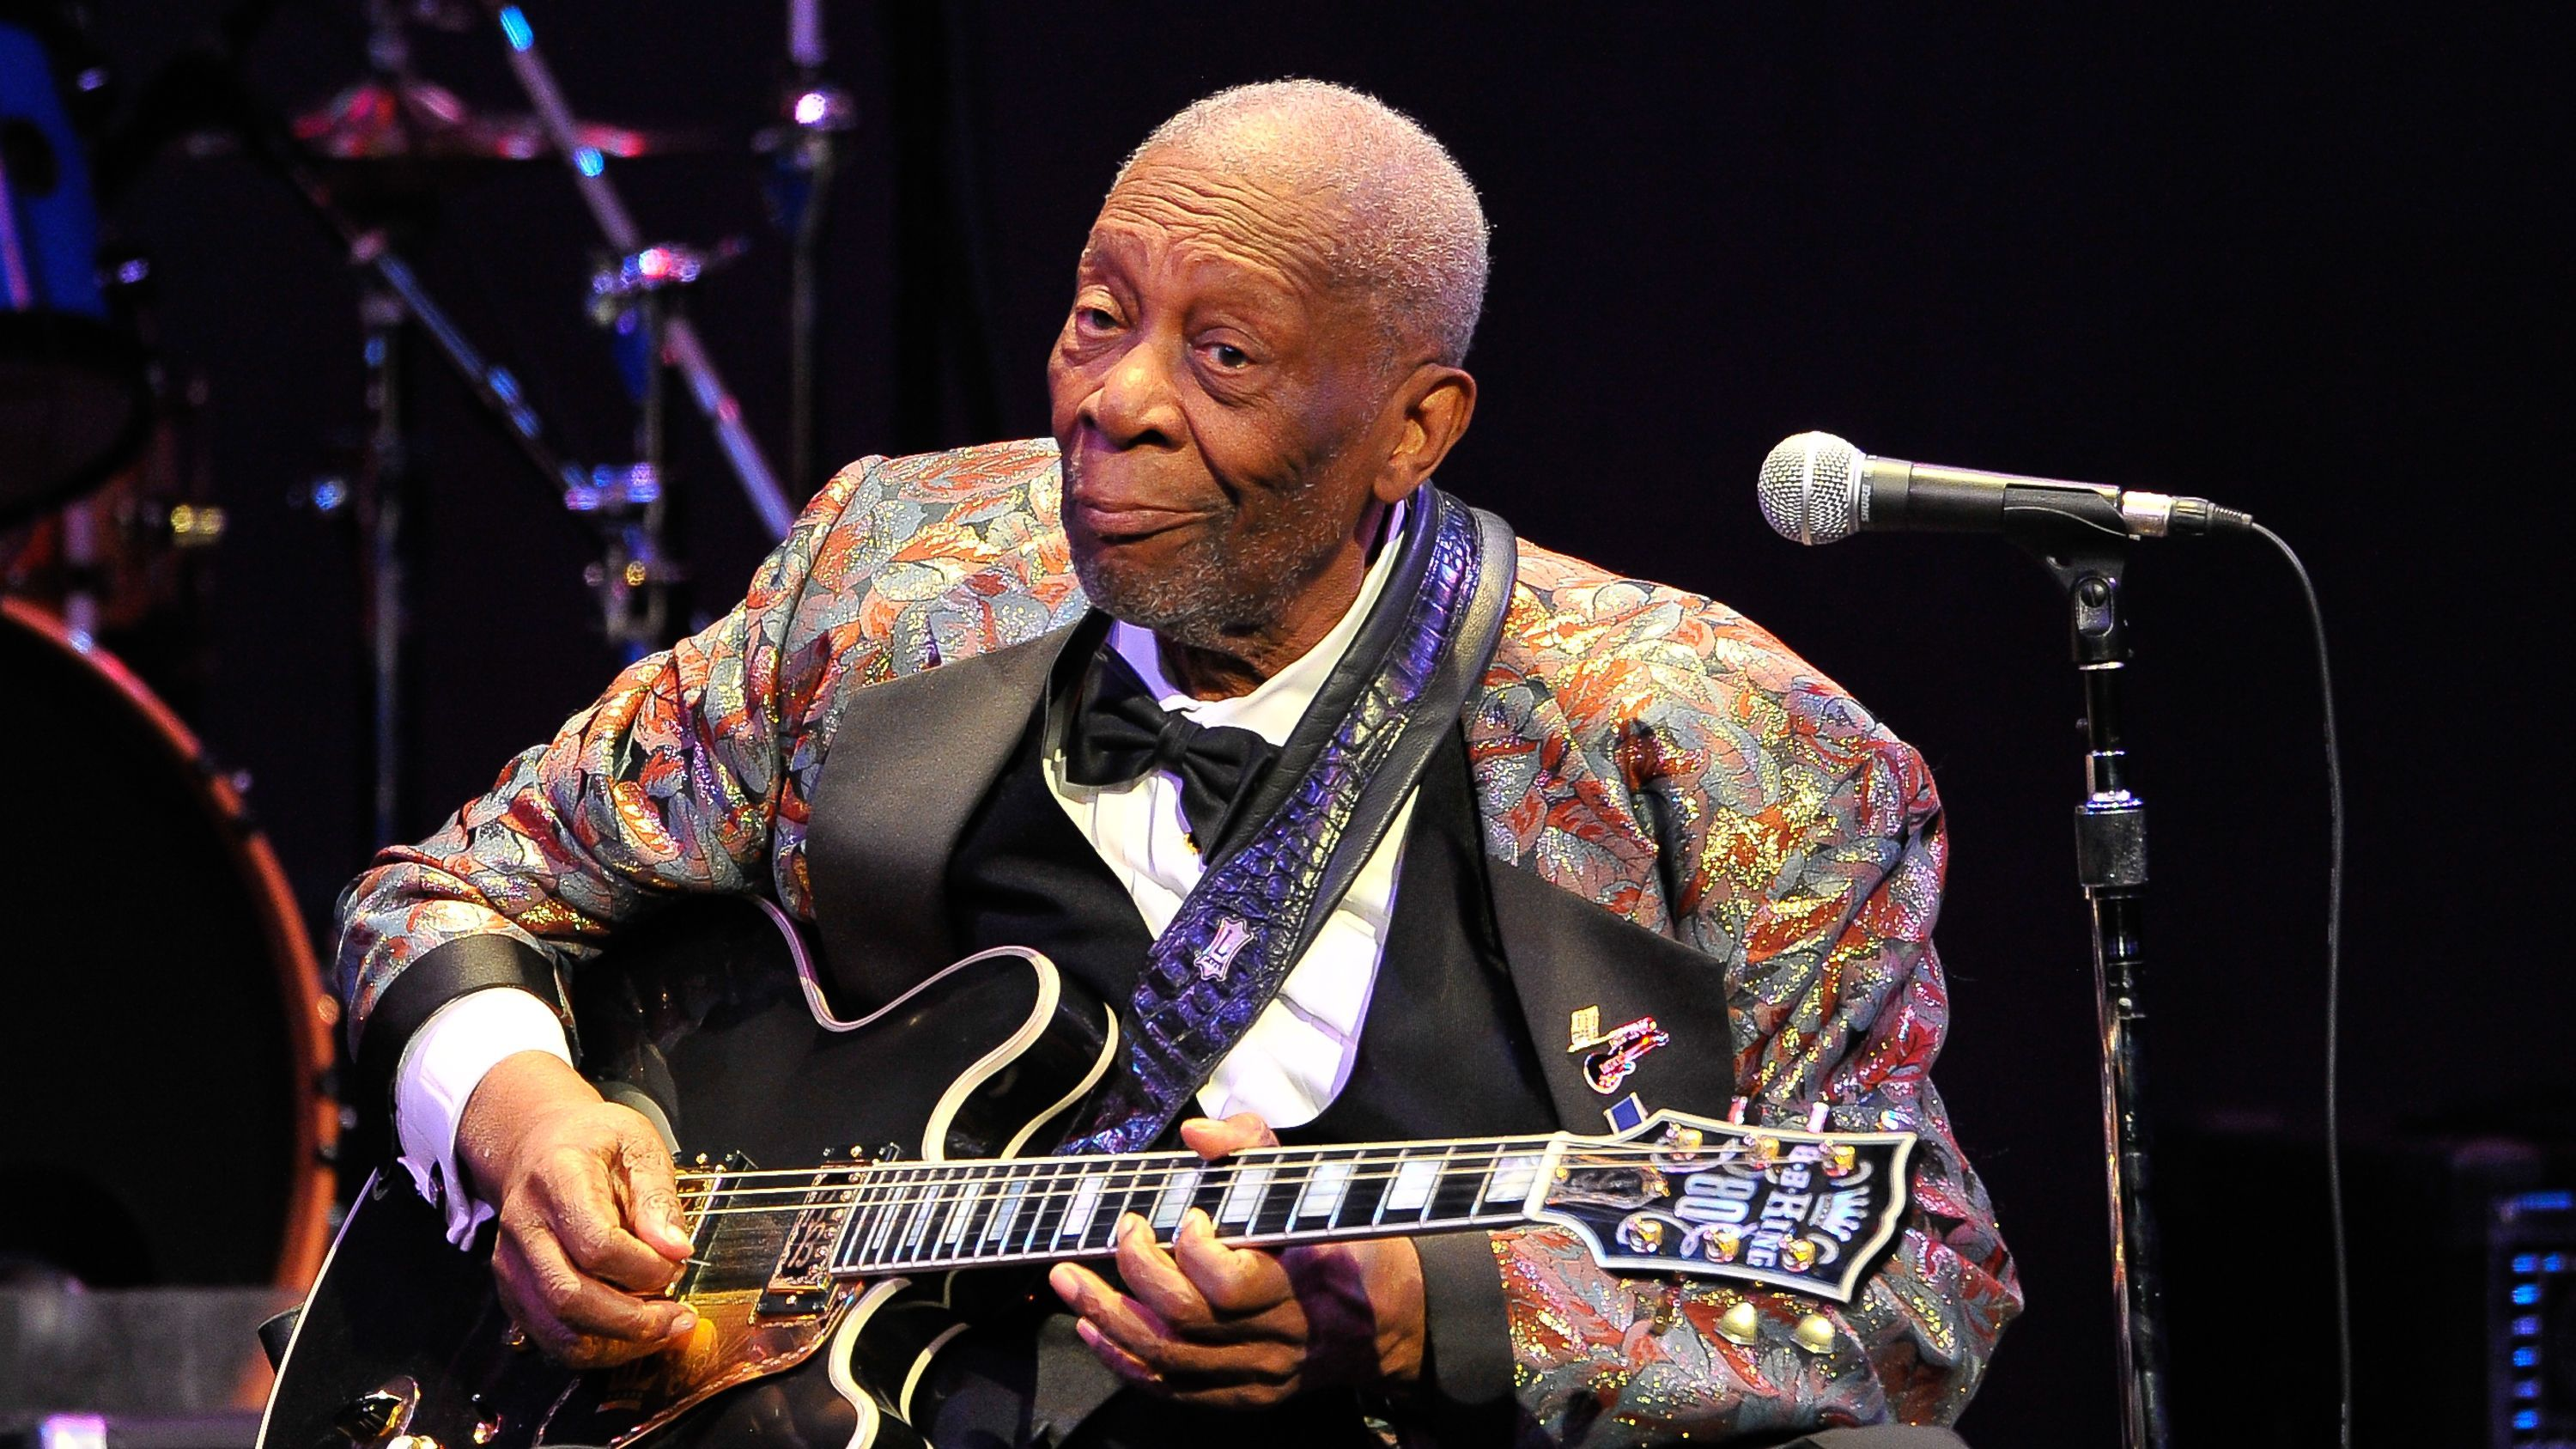 Died BB King 05/15/2015 20